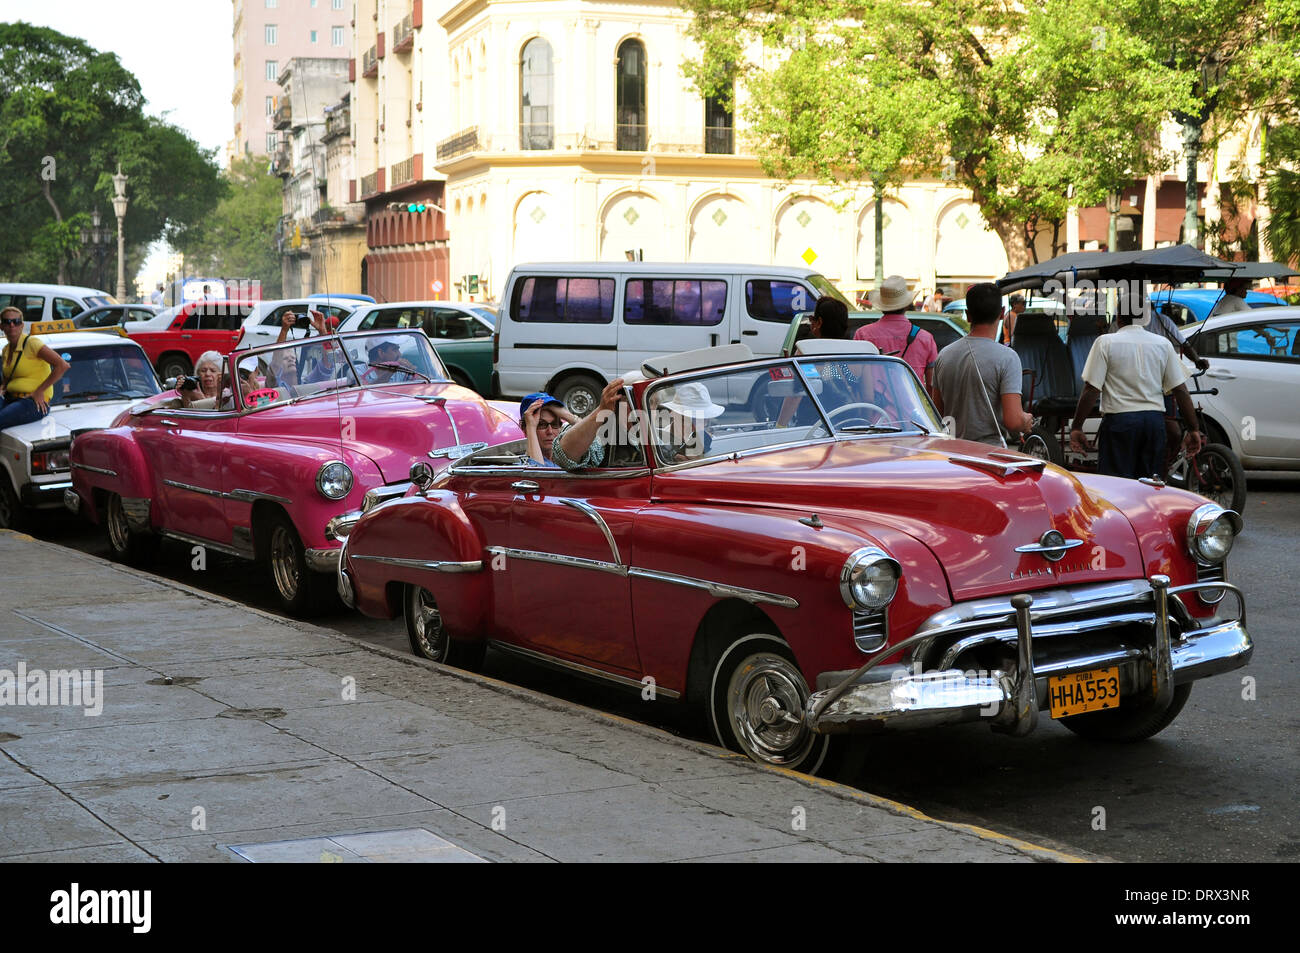 Havana, Cuba: classic restored American cars wait to take tourists around the city's sights. - Stock Image